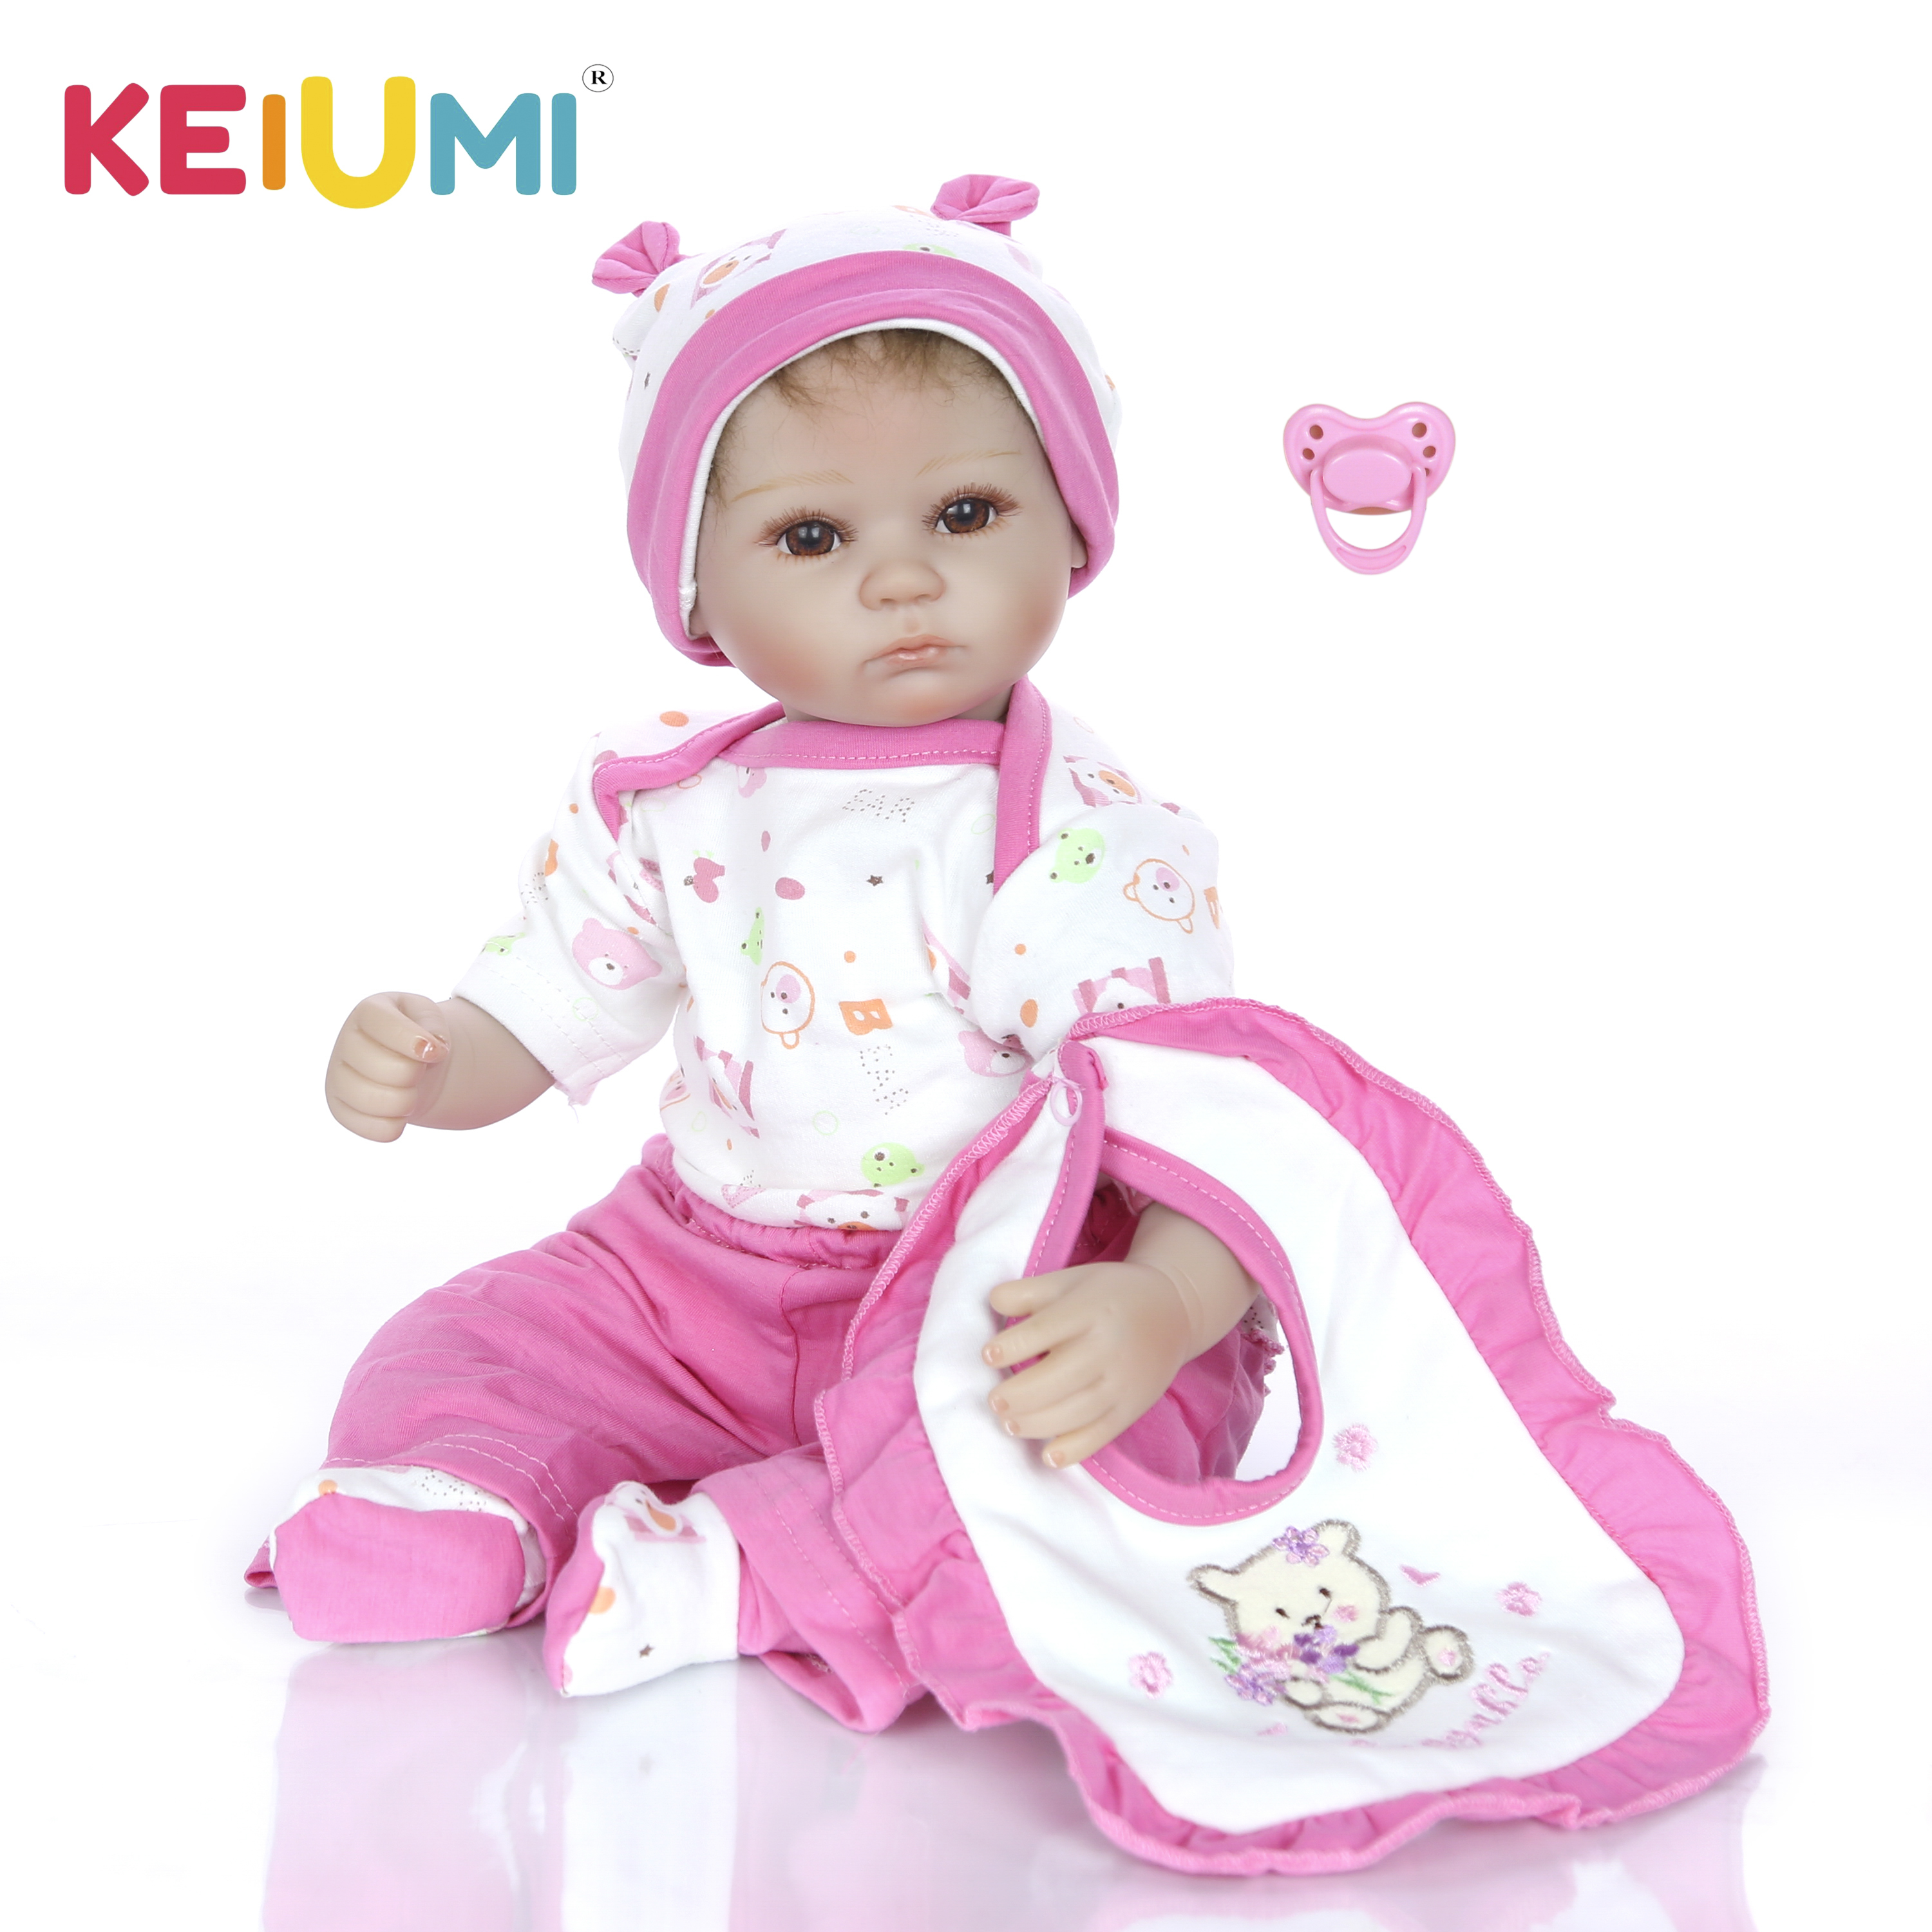 KEIUMI 17 Inch Reborn Baby Dolls For Sale Lifelike Silicone So Truly Girl or Boy Twins